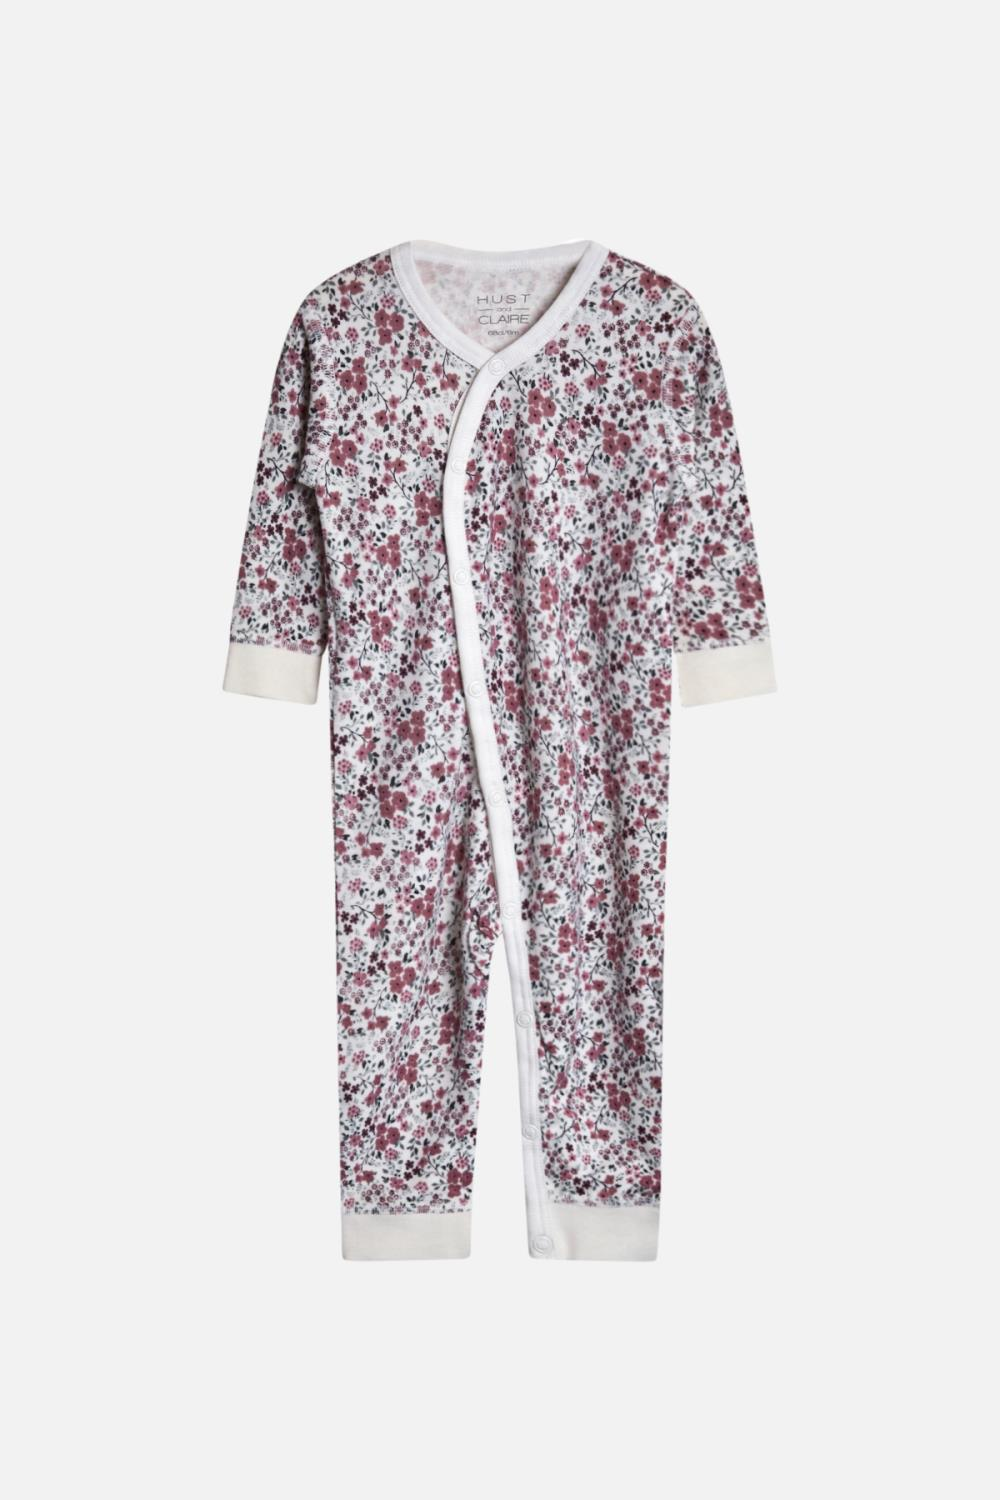 Hust and Claire - Heldress Mala med blomster i ull/bambus, offwhite